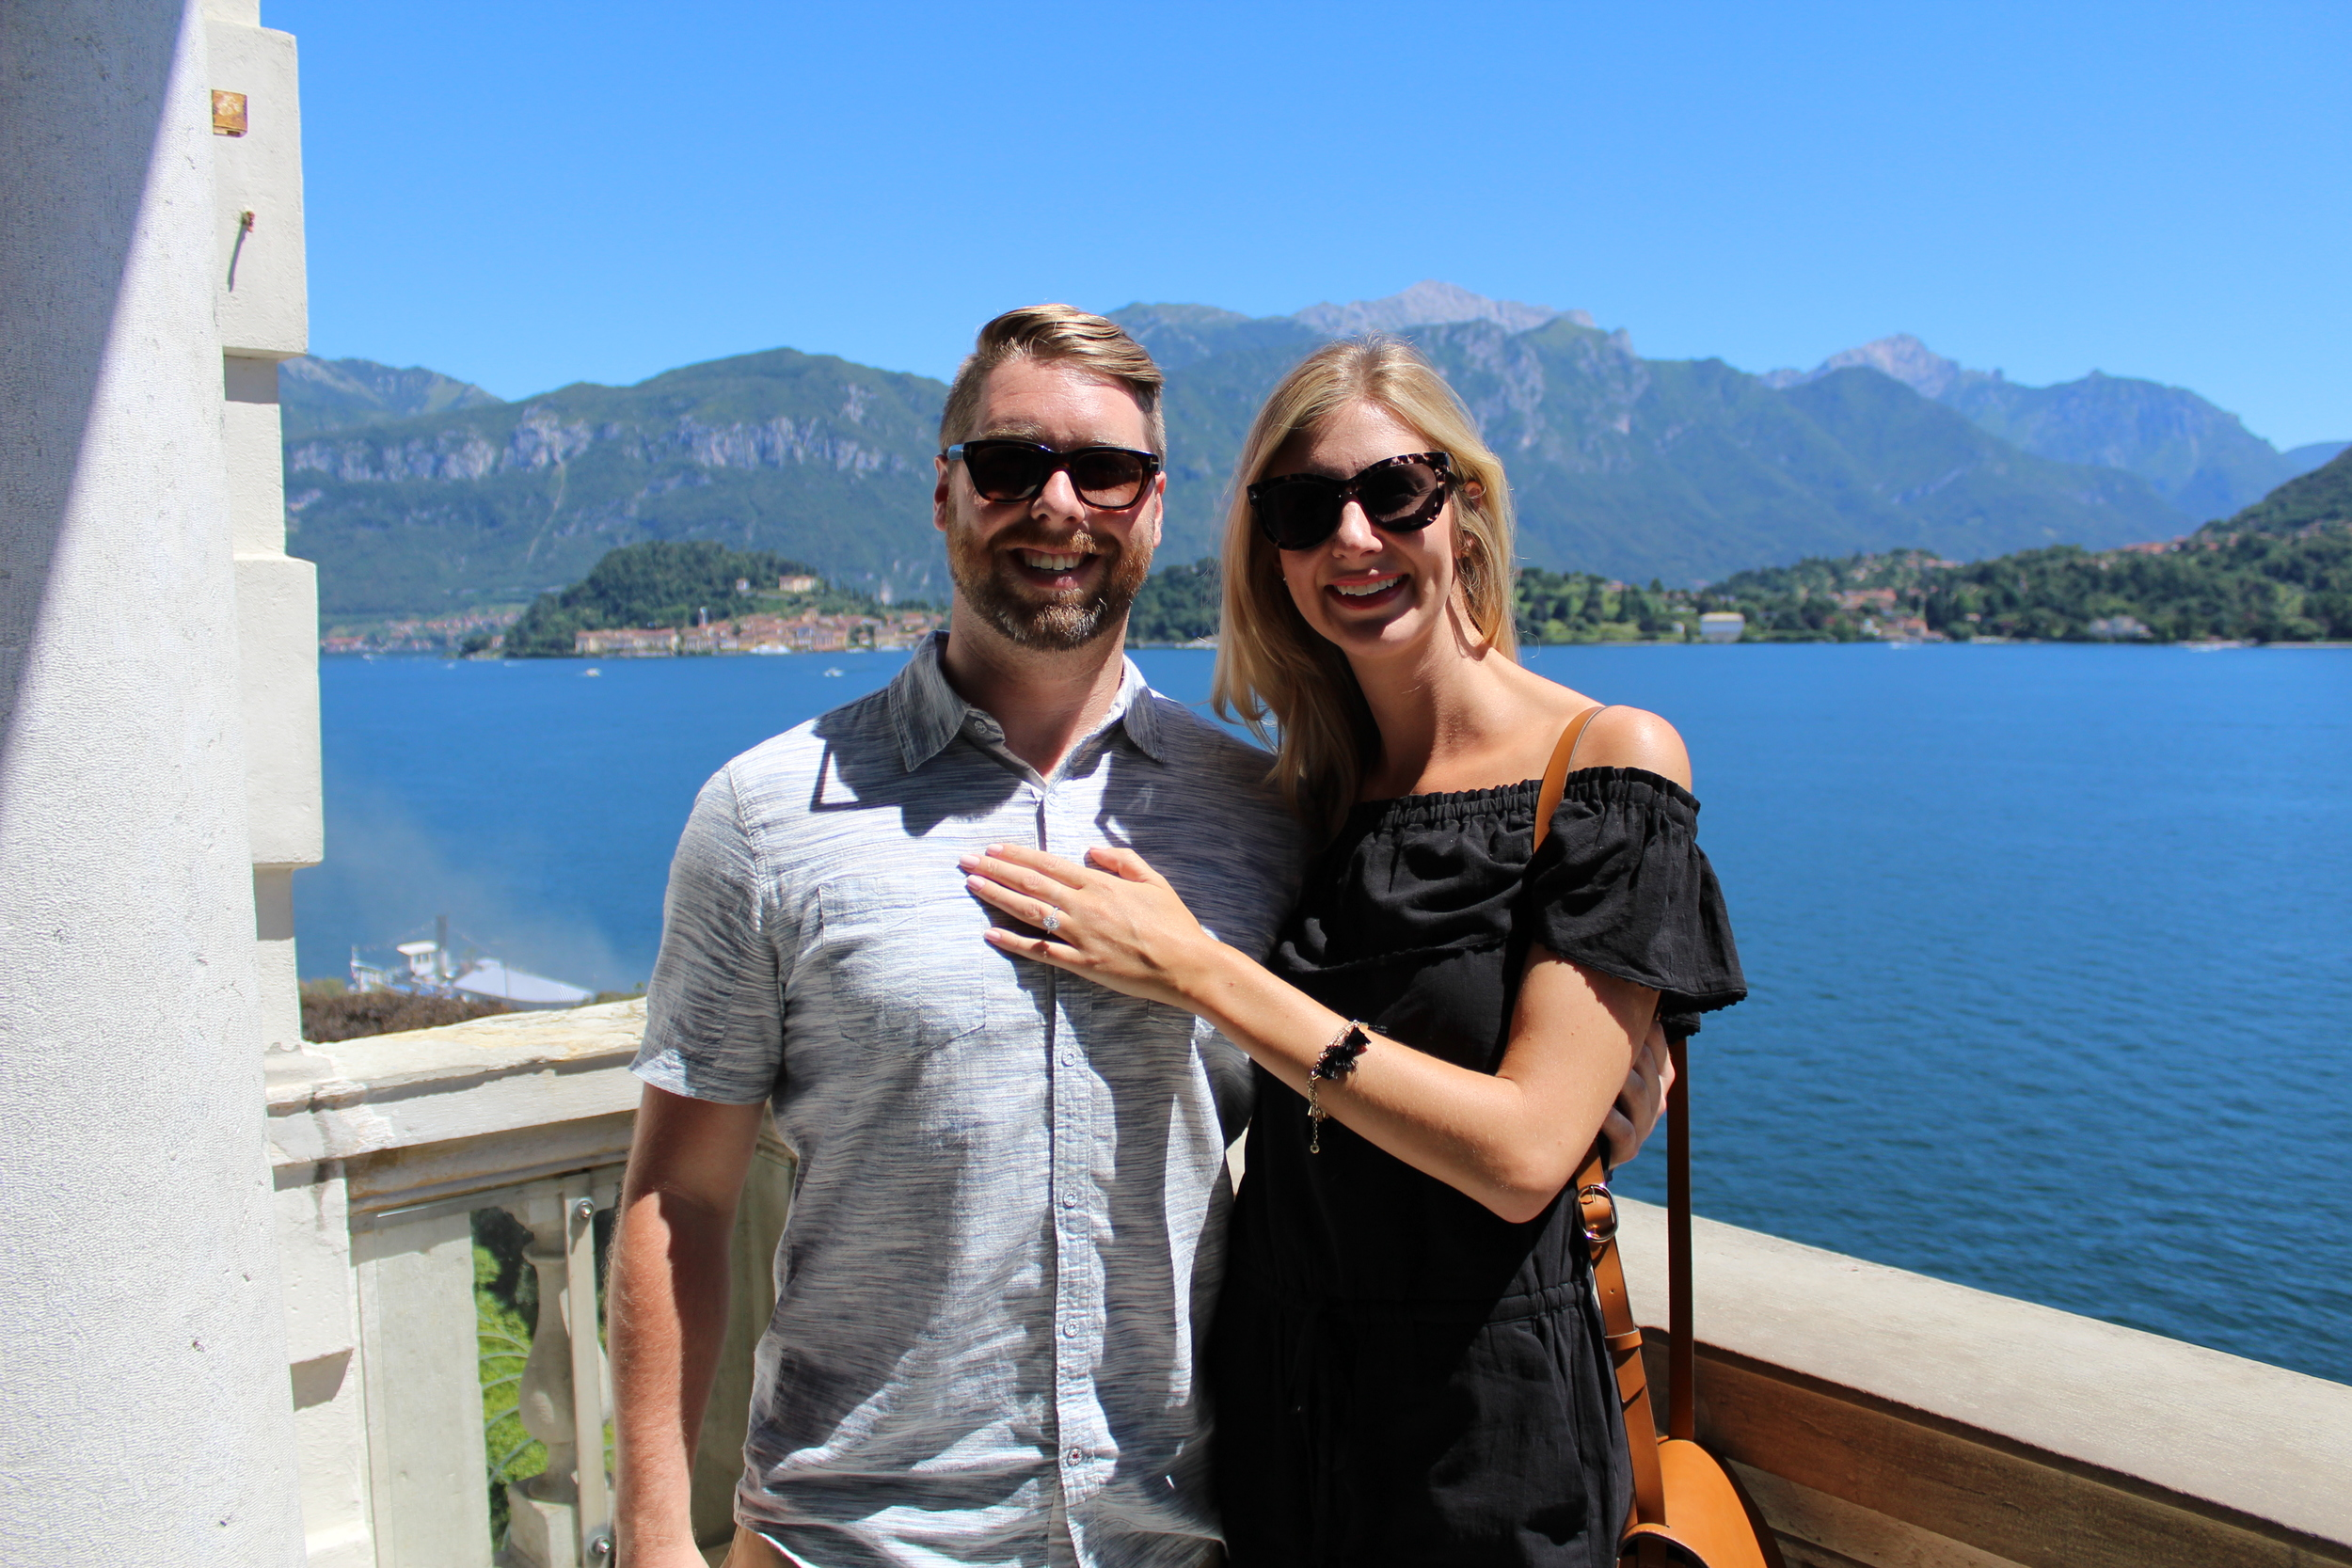 More details on our engagement and staying in lake como soon to follow in travel.